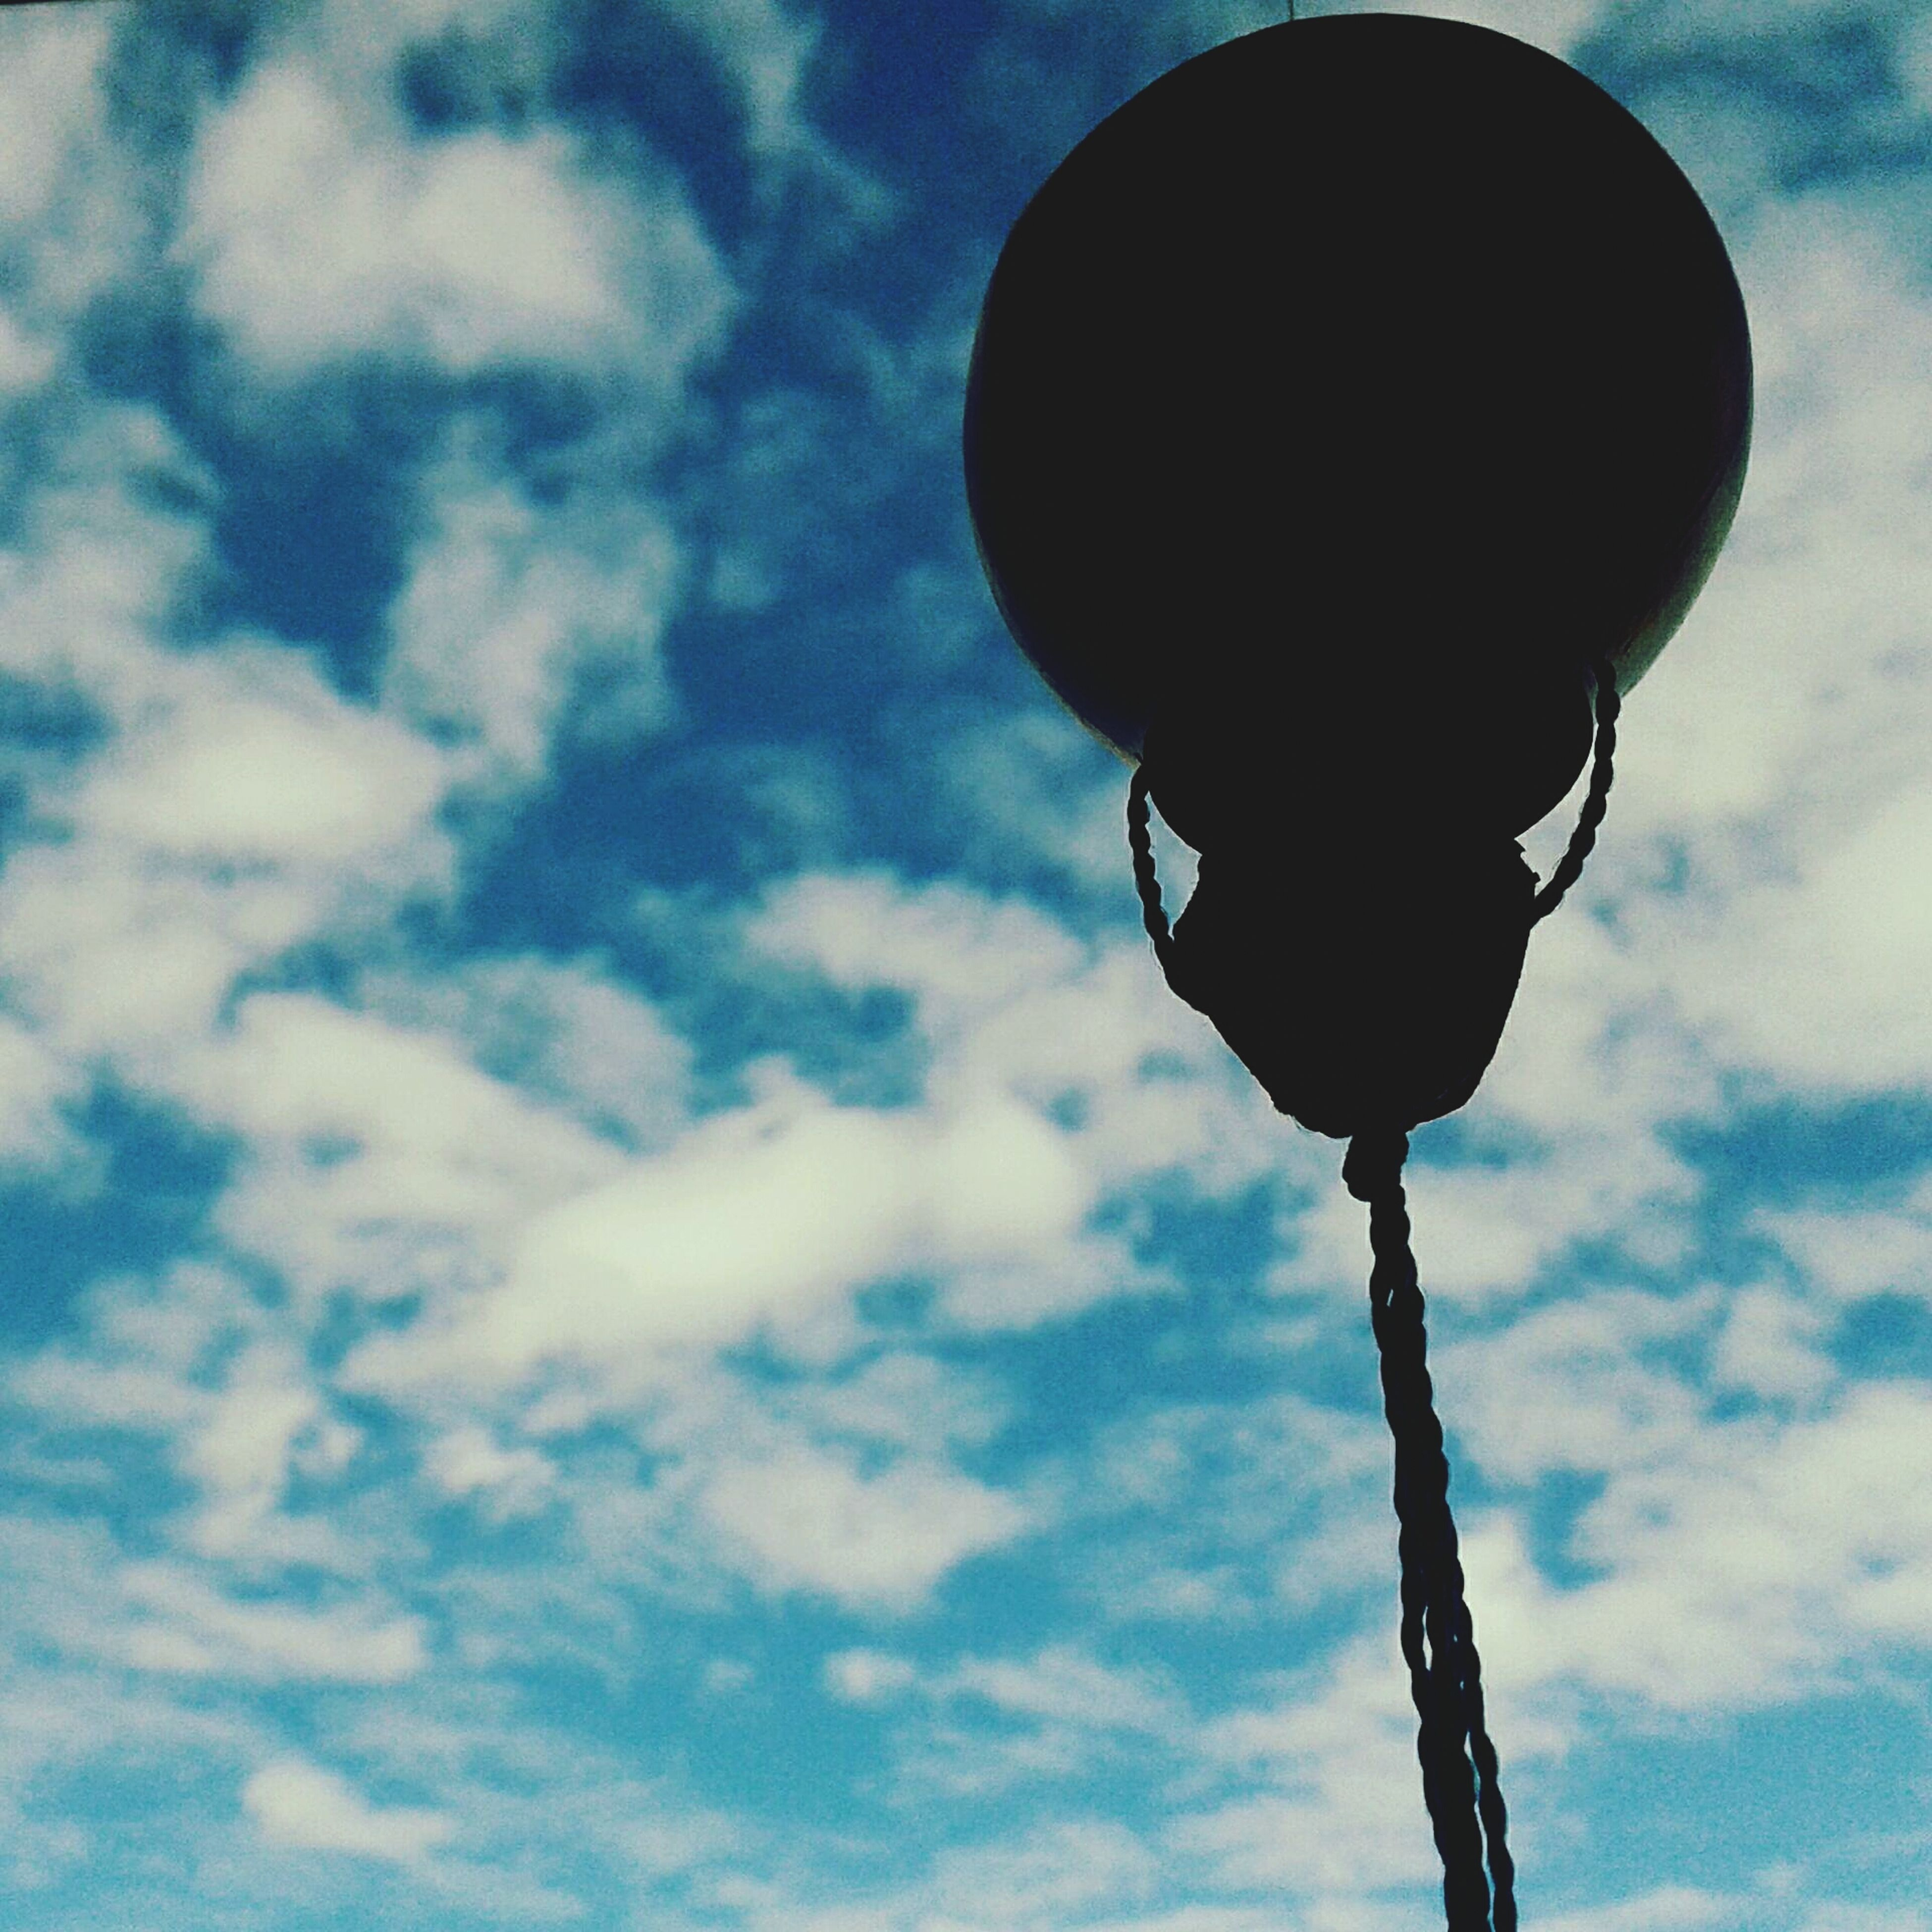 low angle view, sky, street light, lighting equipment, cloud - sky, pole, cloudy, cloud, outdoors, blue, electricity, no people, nature, day, electric light, lamp post, metal, tall - high, tranquility, dusk